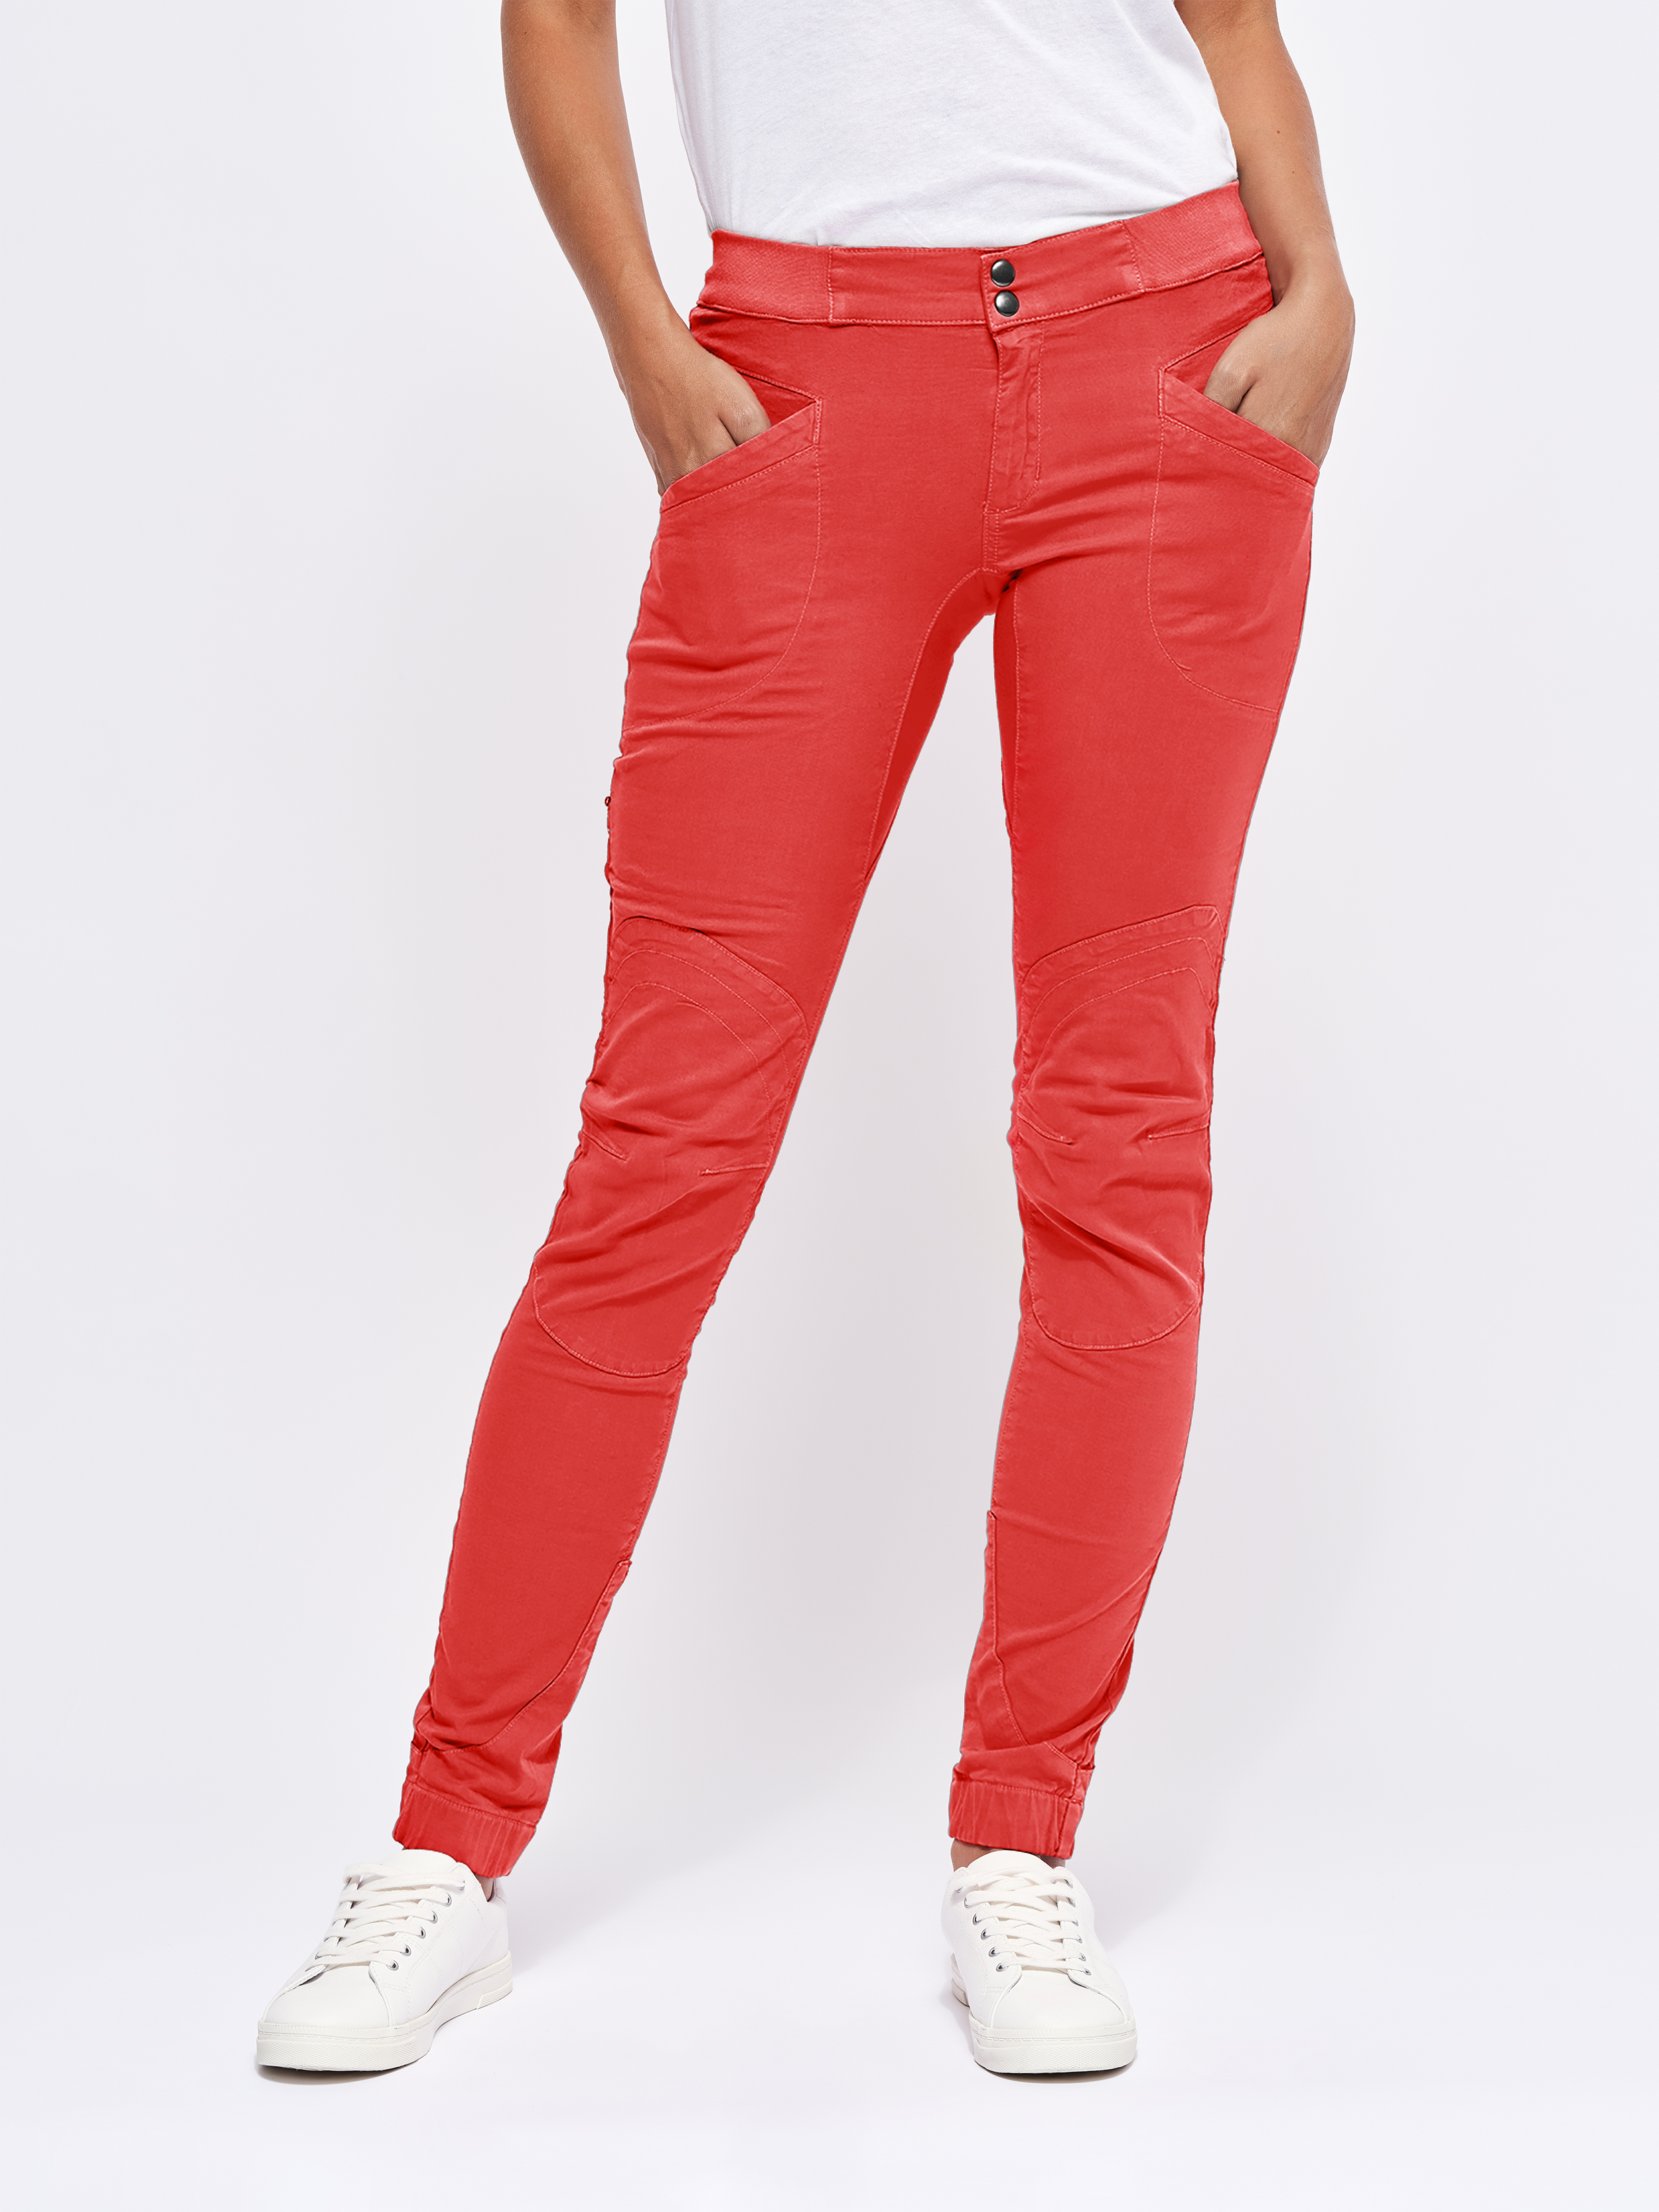 Looking For Wild Laila Peak Pant - Climbing trousers - Women's